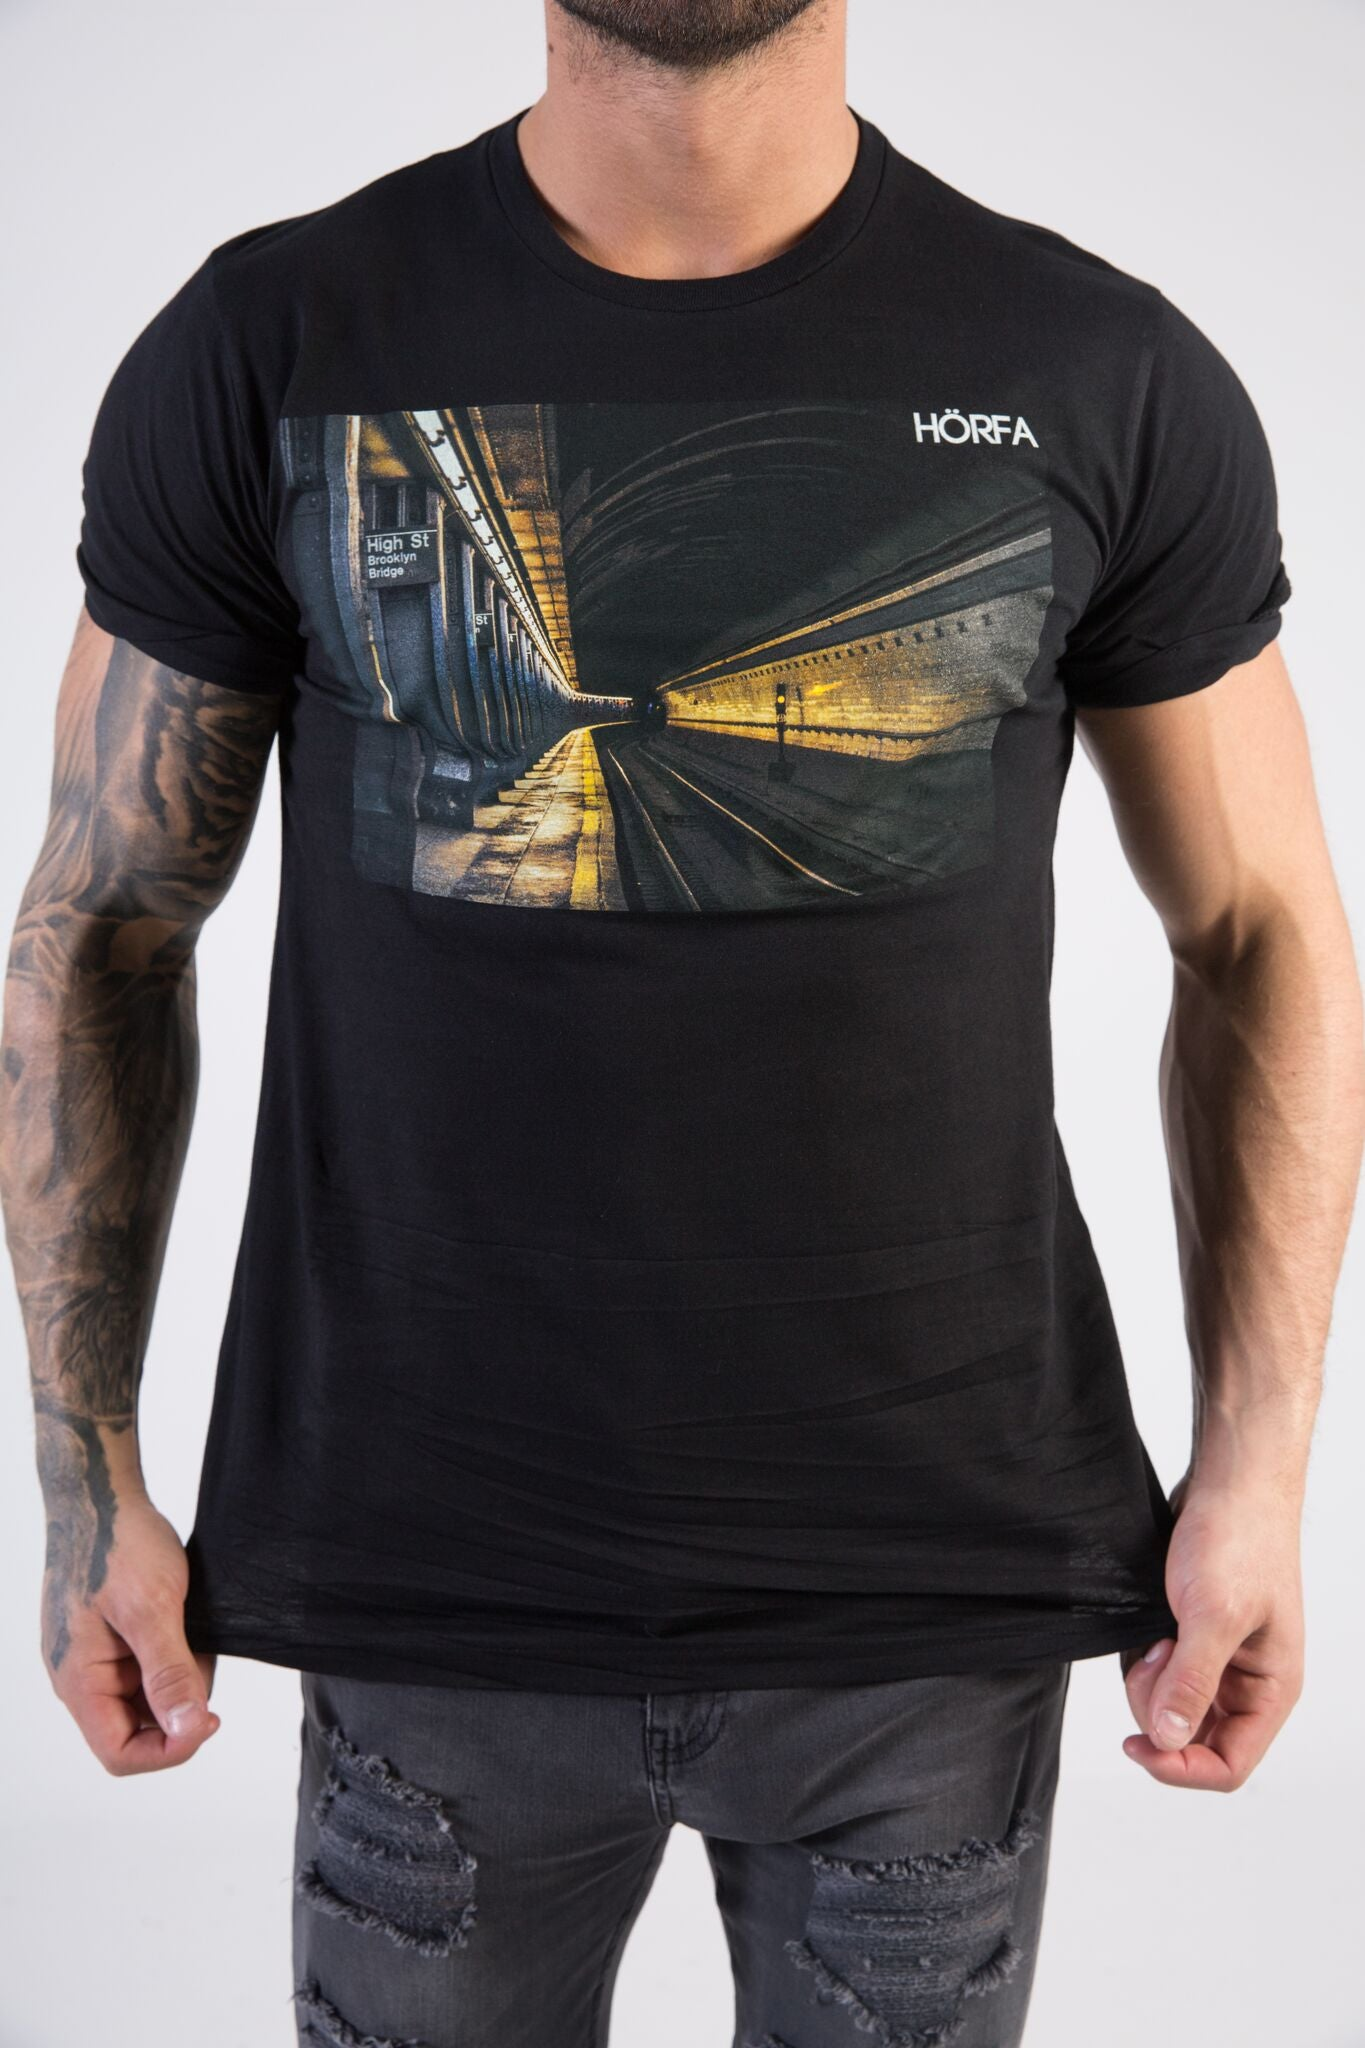 SUB STATION Muscle Fit T-Shirt - HÖRFA is a men's global fashion brand that provides products such as Fashionable Watches, Wallets, Sunglasses, Belts, Beard and Male Grooming Products